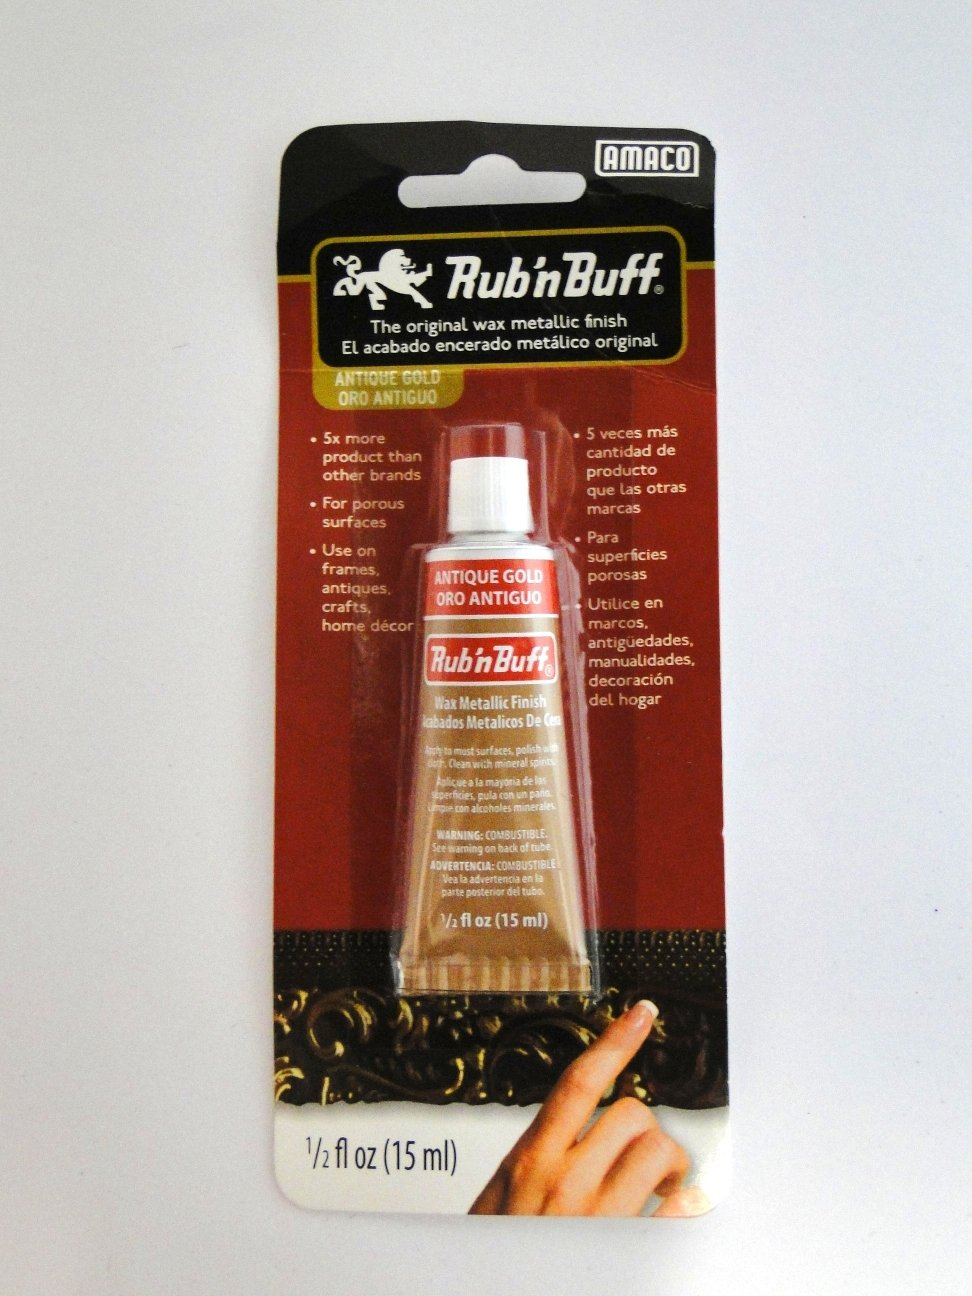 Antique Gold Rub N Buff Original Metallic Gilding Wax Based Antiquing Decorating Crafts 15ml (Pack of 3)